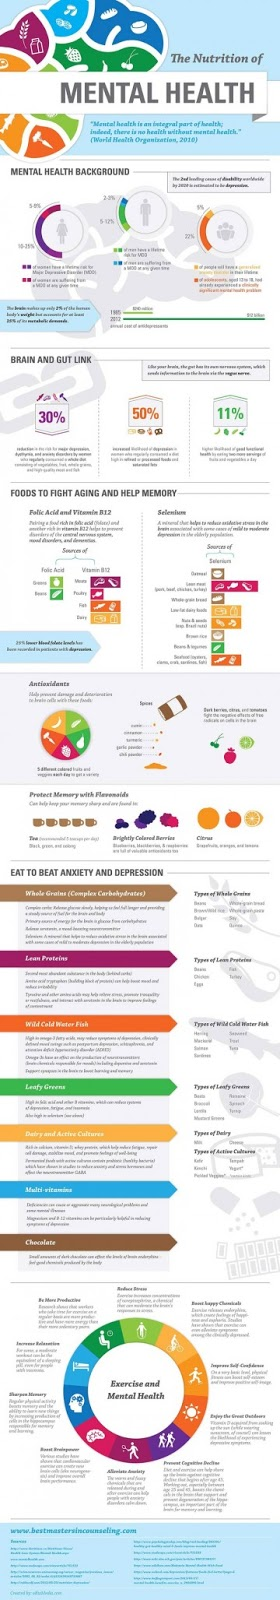 The diet of the mental health infographic